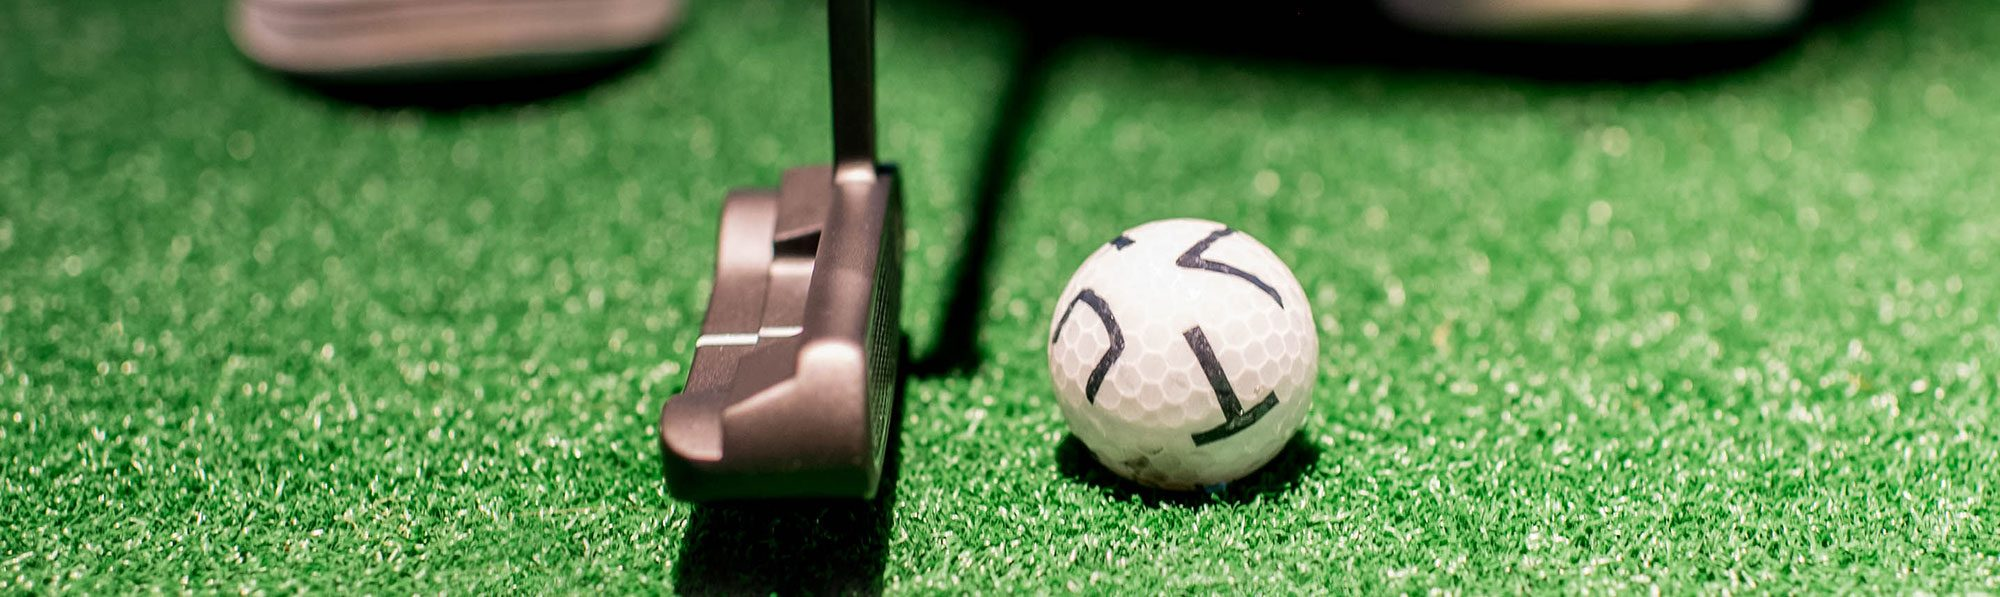 Image of putter lined up with X-Golf ball